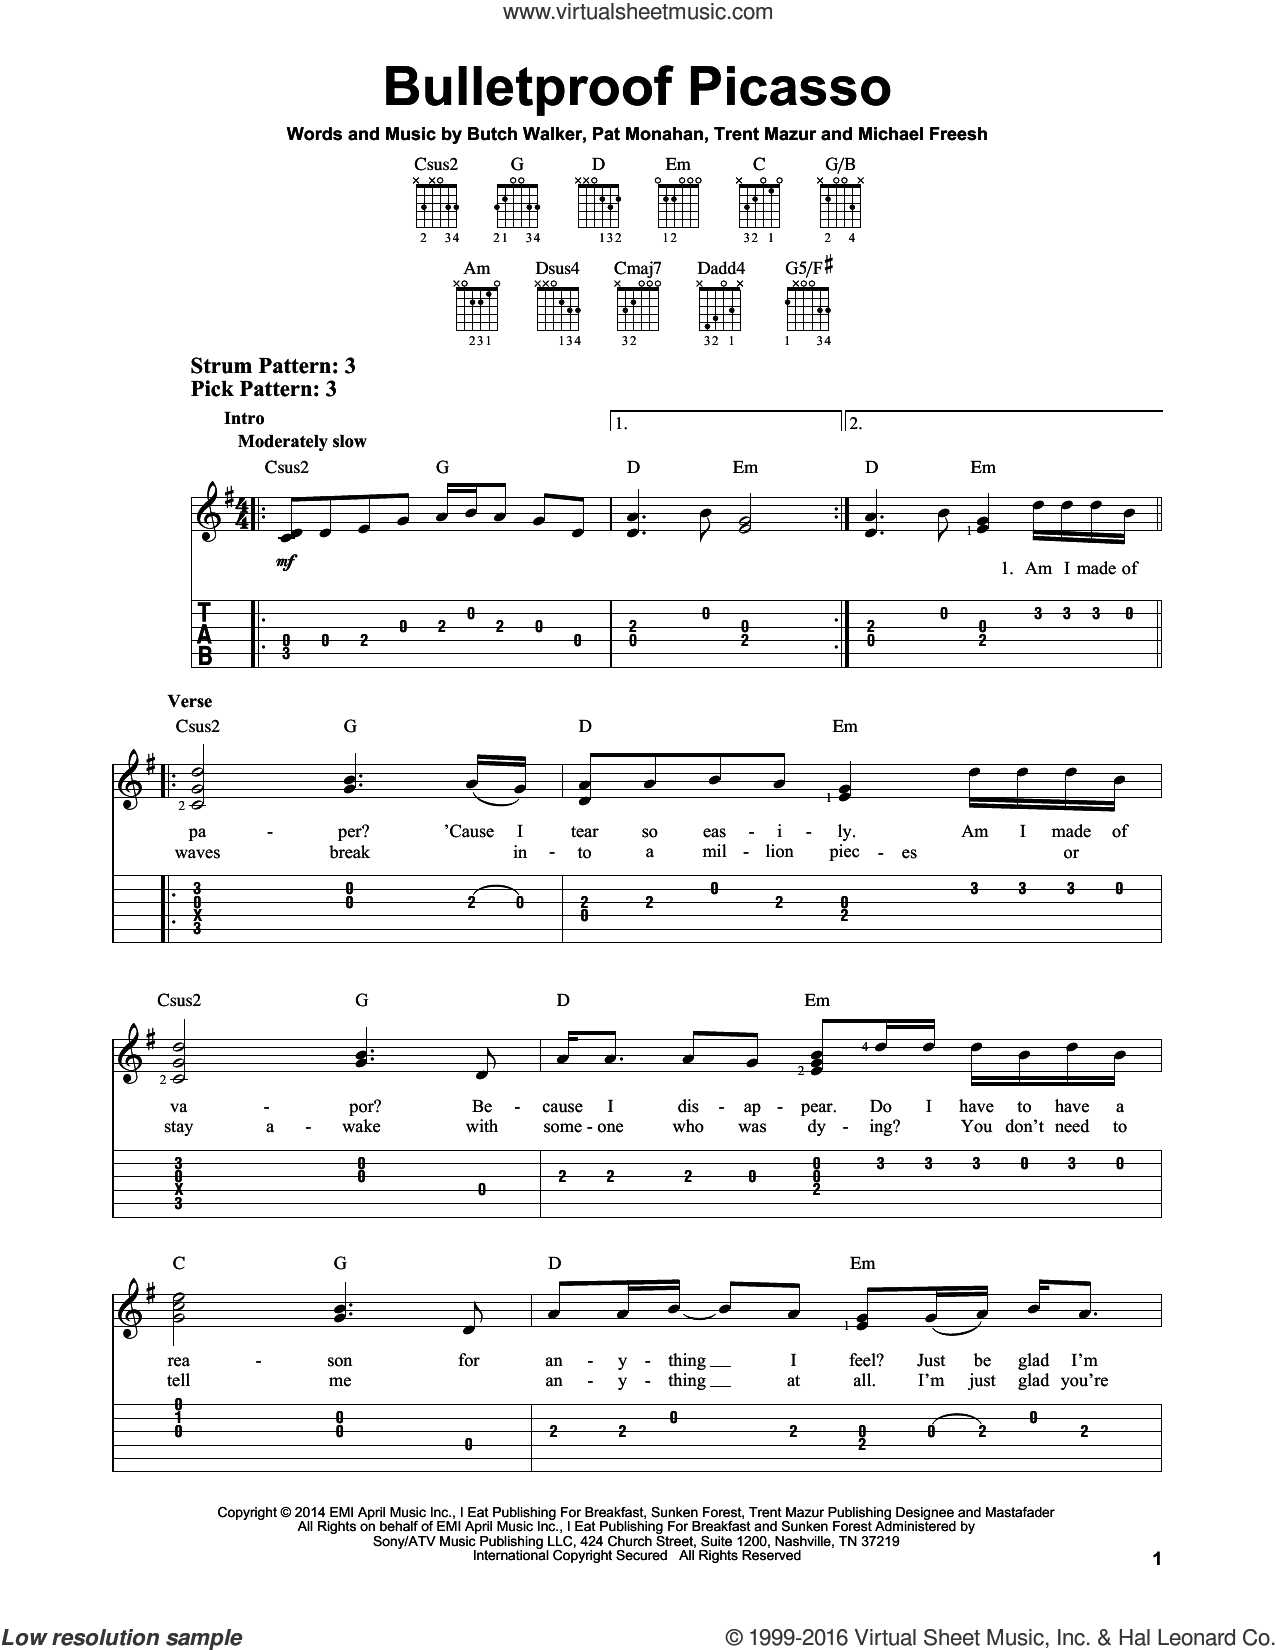 Bulletproof Picasso sheet music for guitar solo (easy tablature) by Trent Mazur, Train, Butch Walker and Pat Monahan. Score Image Preview.